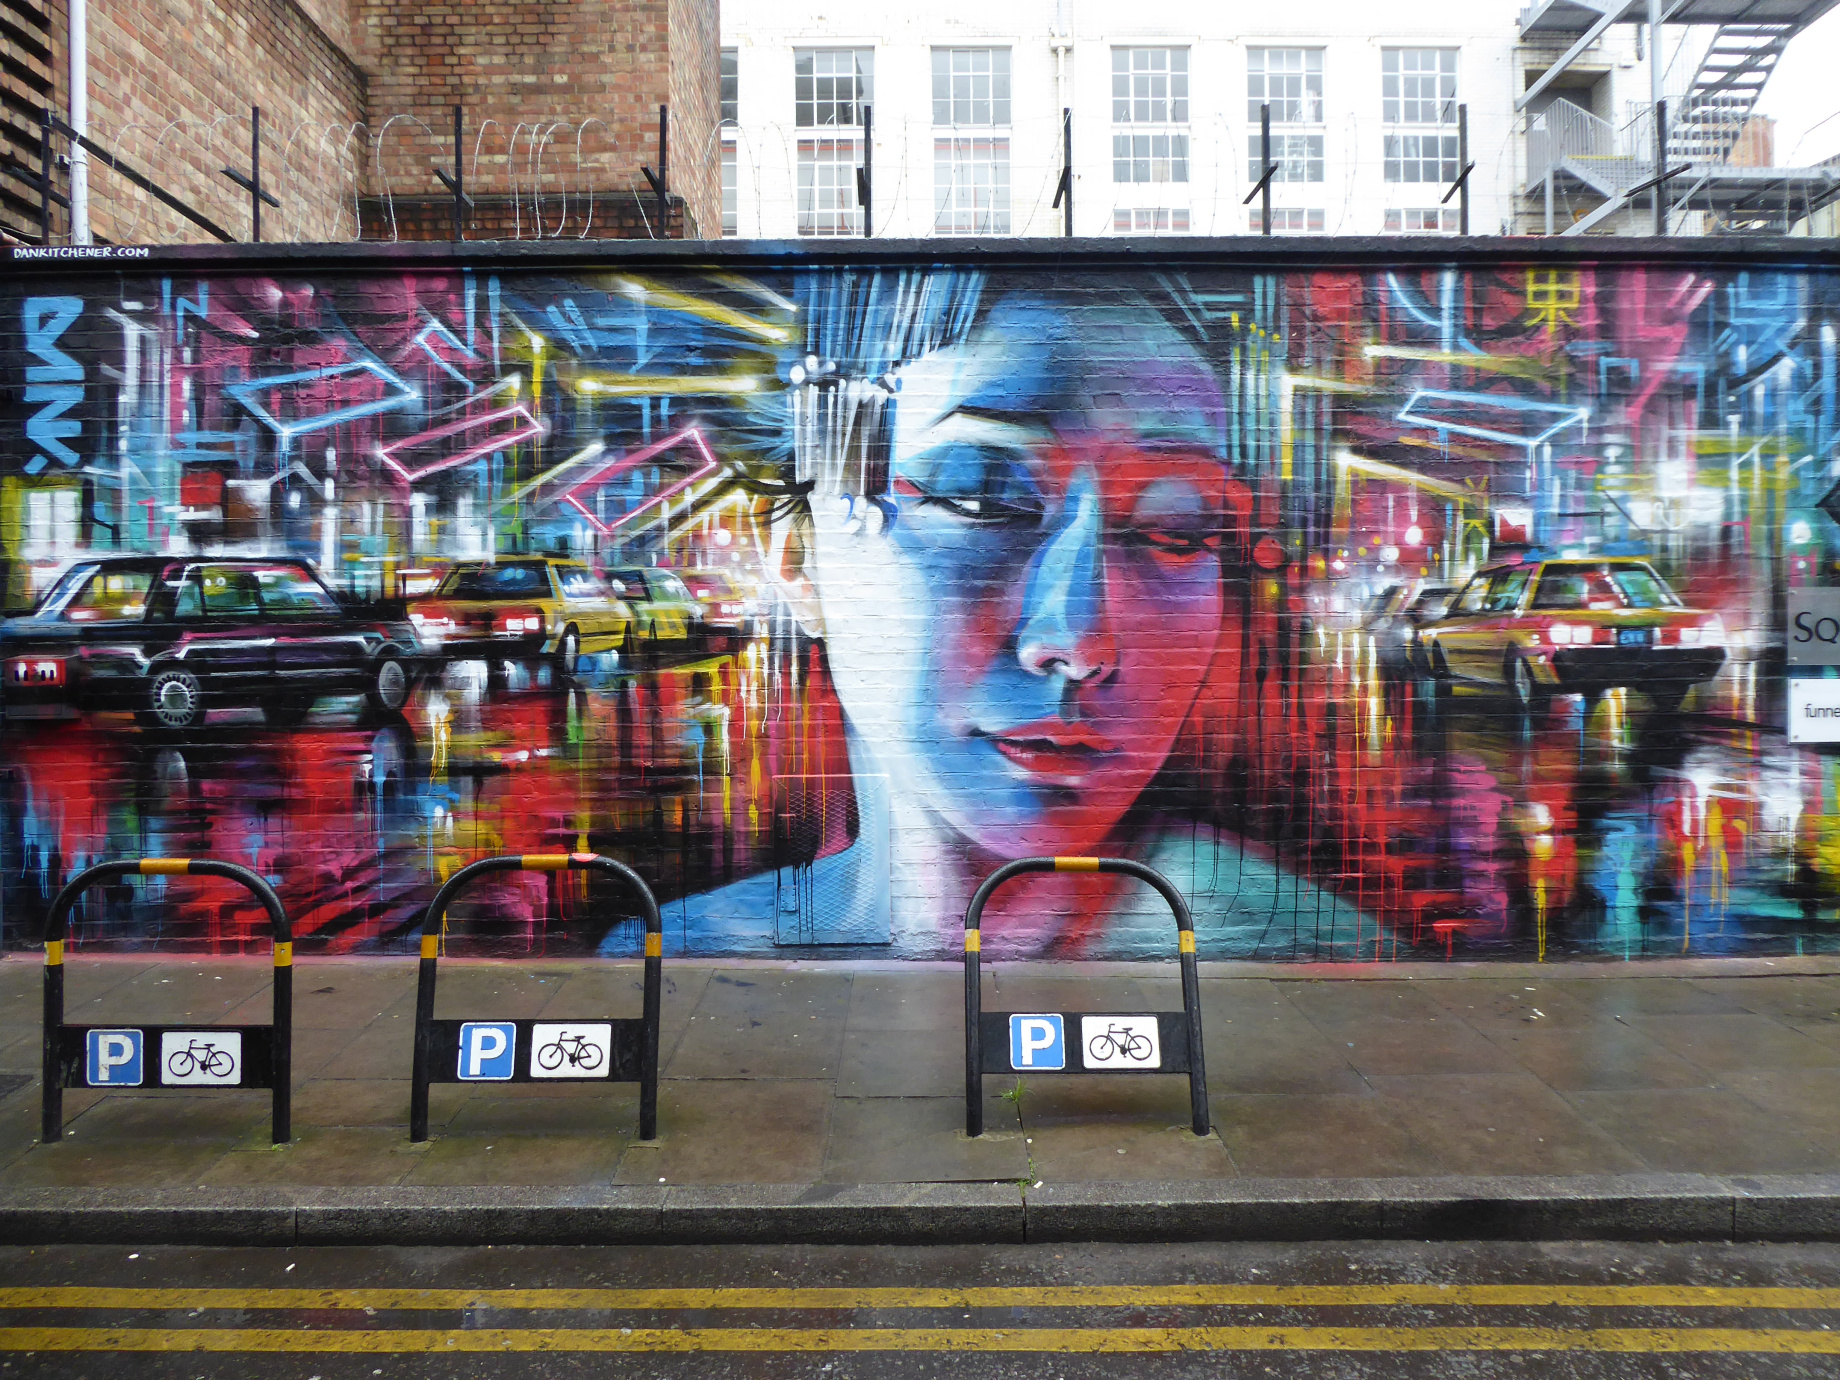 dan-kitchener-street-art-best-of-2018.jpg